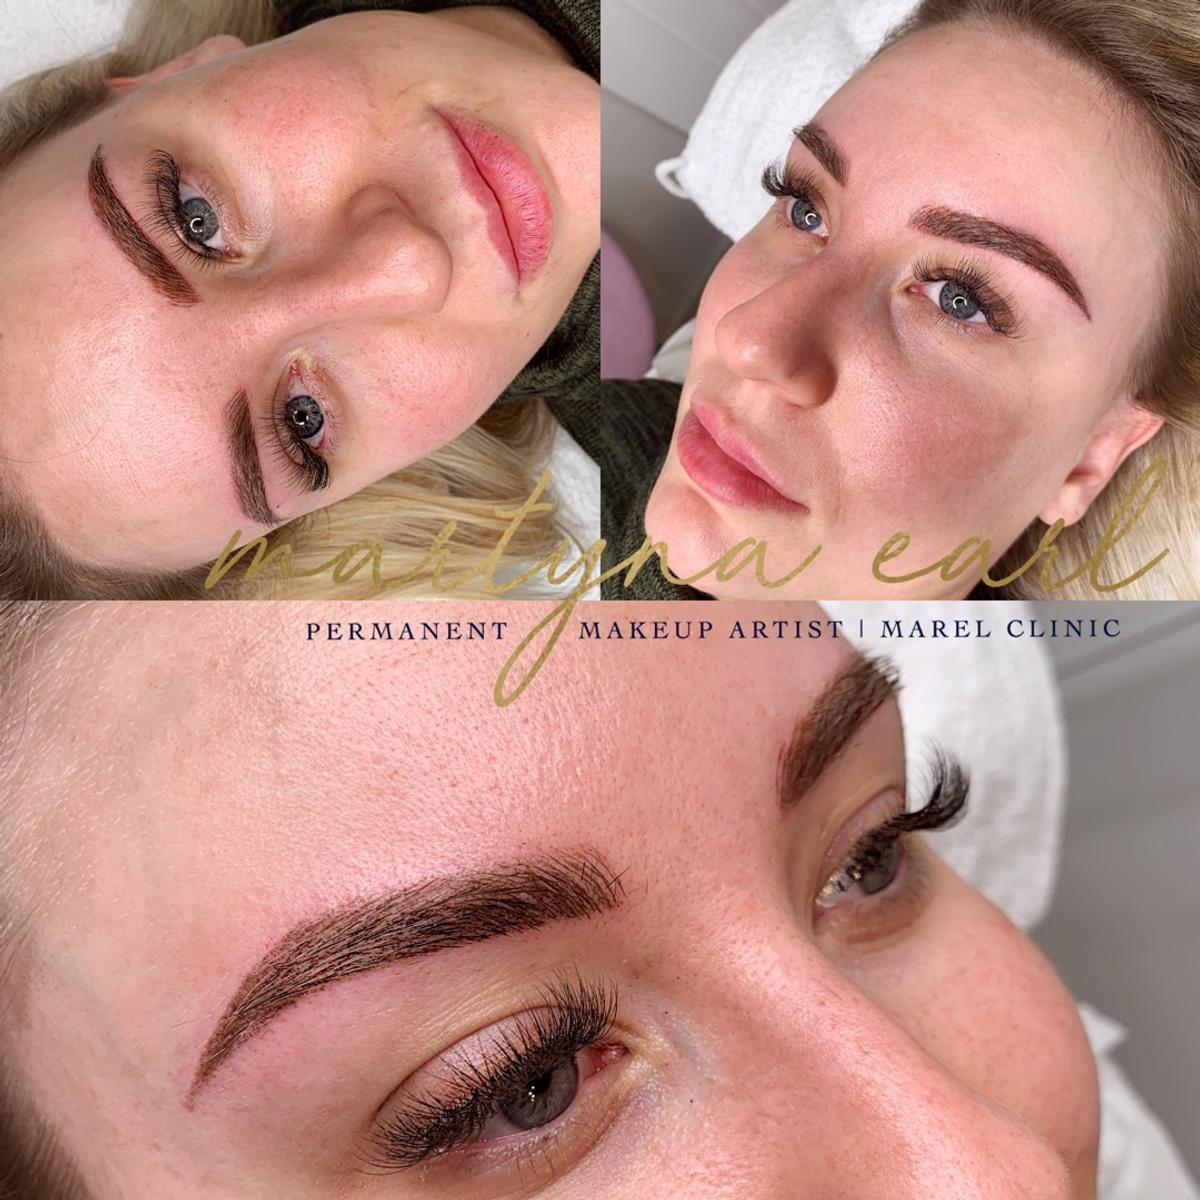 Microblading & Semi Permanent Makeup in ME4 Kent for £120 00 for